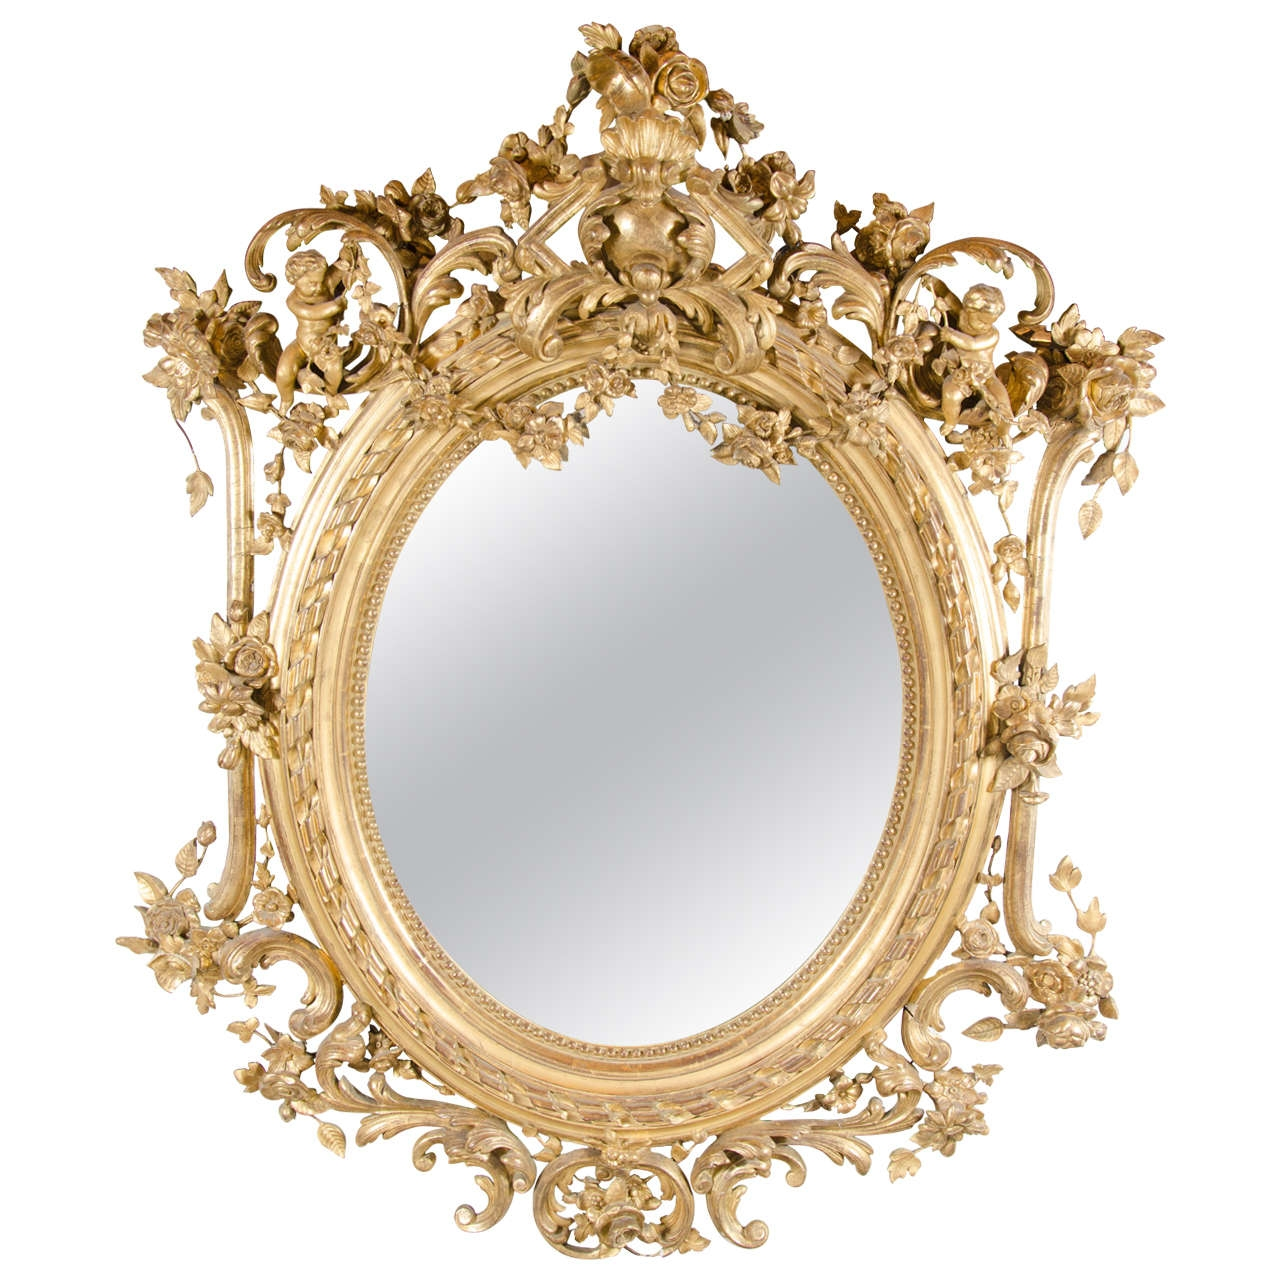 French Rococo Oval Mirror With 24 Karat Gold Gilt And Foliage Regarding Gold French Mirror (Image 6 of 15)